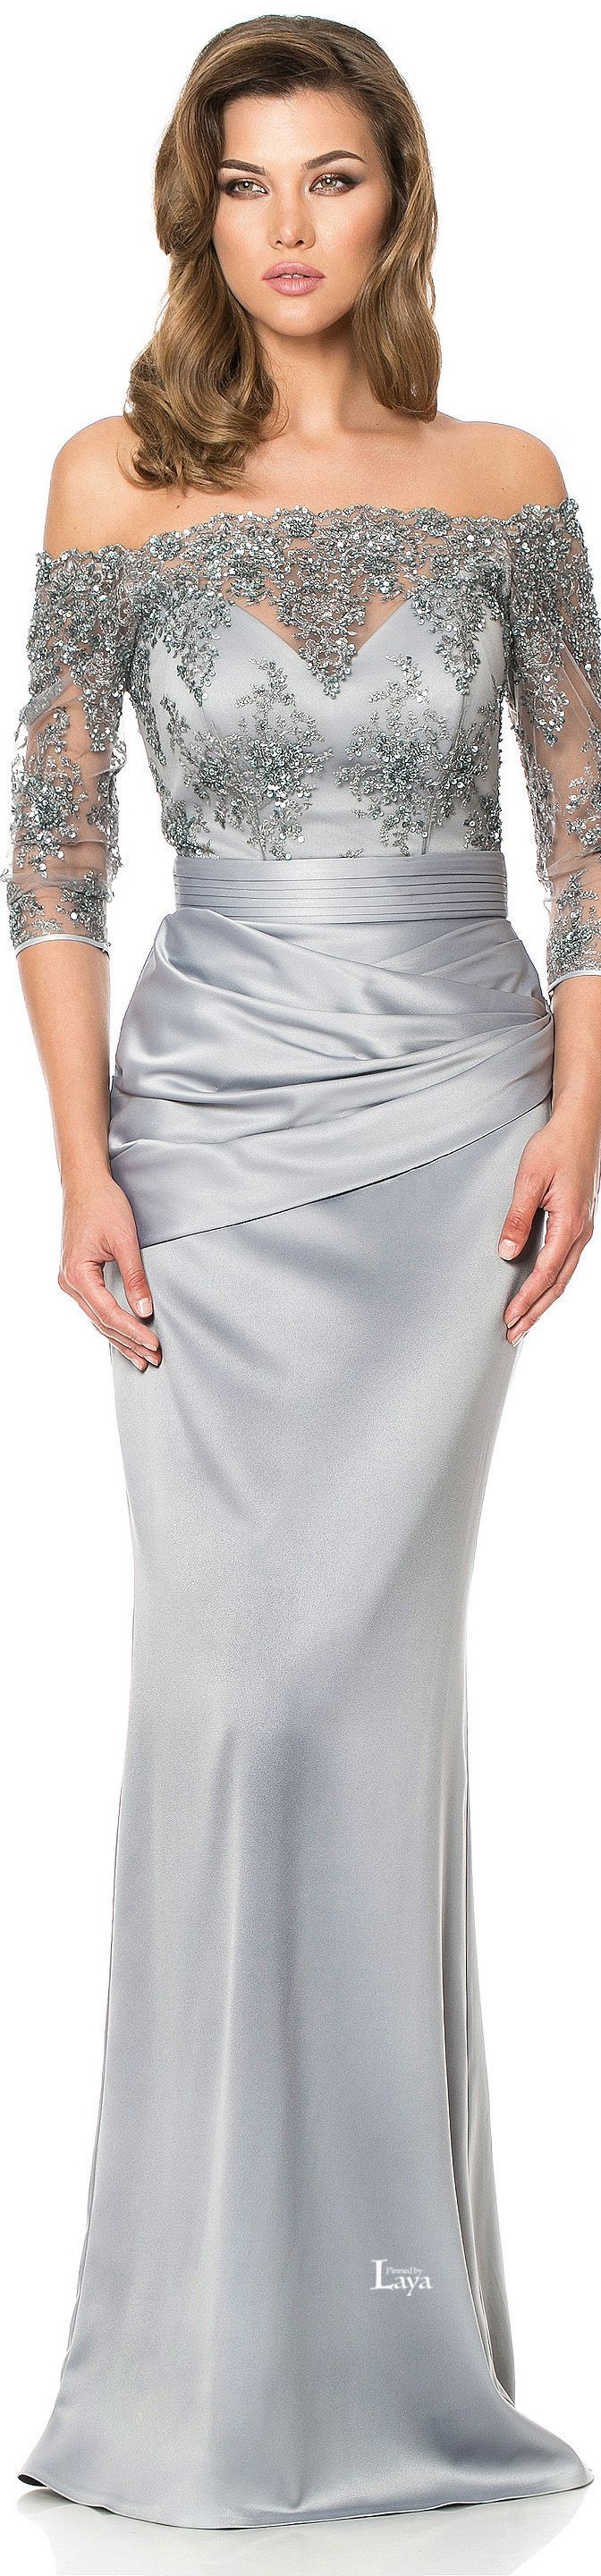 Platinum grey mother of the bride formal dresses with beaded lace are great for all seasons.  This off the shoulder dress design has 3/4 length sleeves.  As USA dress makers we can customize any design to your liking.  We can work from our #motherofthebridedresses or from any picture you like from the internet.  Custom dress designs & very close #replicas are our specialty.  Get pricing from us via email when you visit our website.